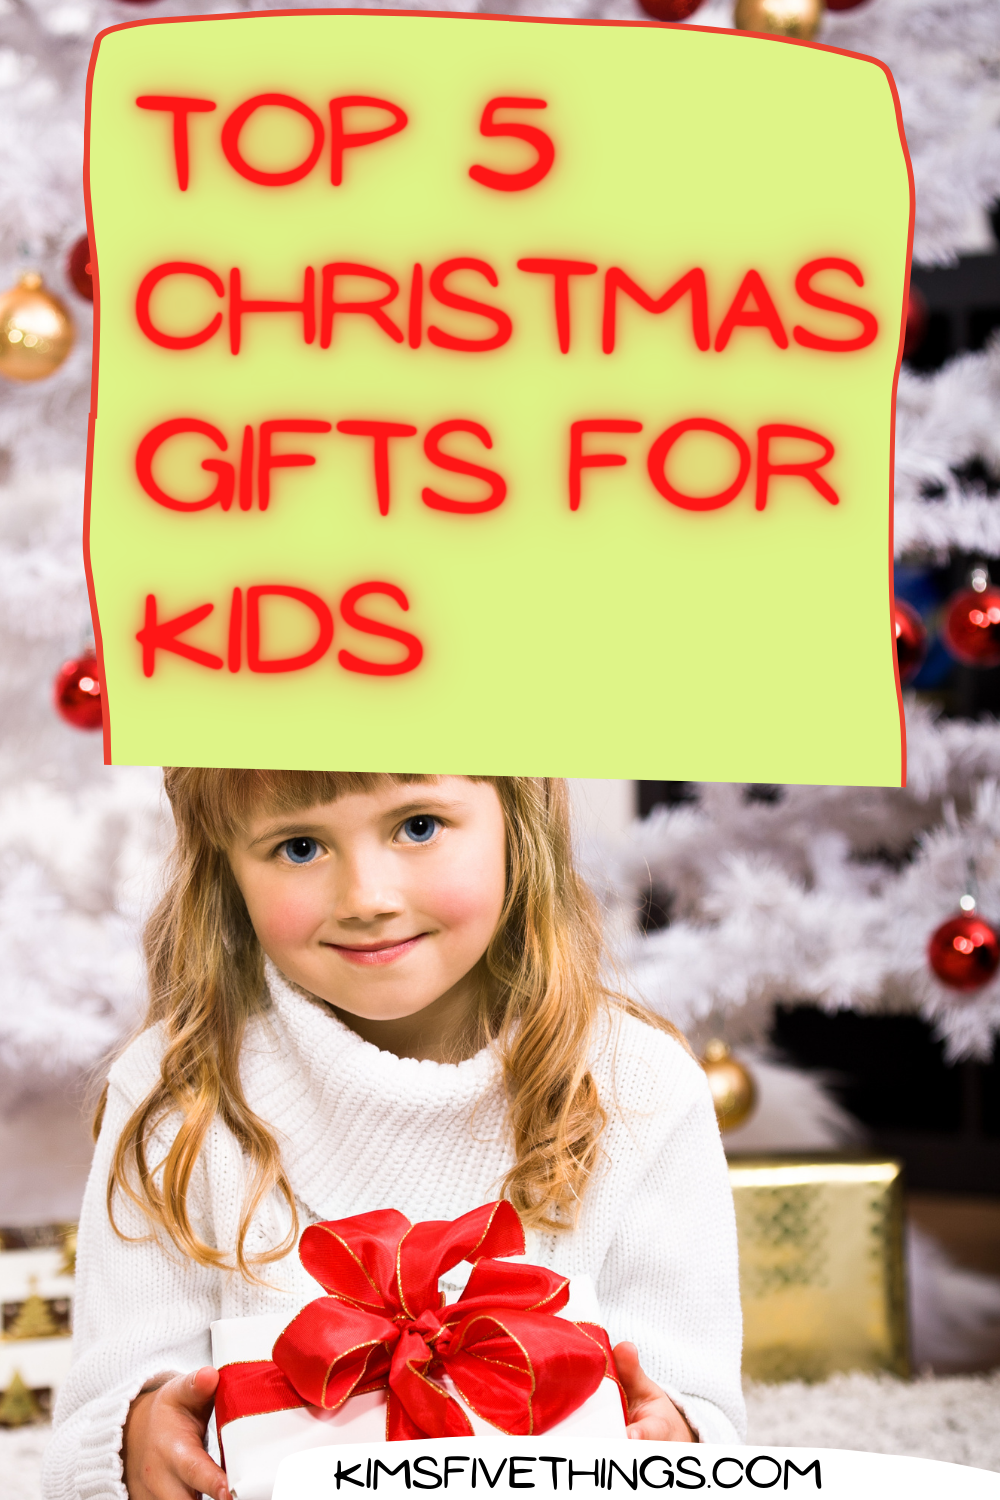 Top 5 Christmas Gifts For Kids 8 10 Years Old 2020 In 2020 Christmas Gifts For Kids Top 5 Christmas Gifts Gifts For Kids